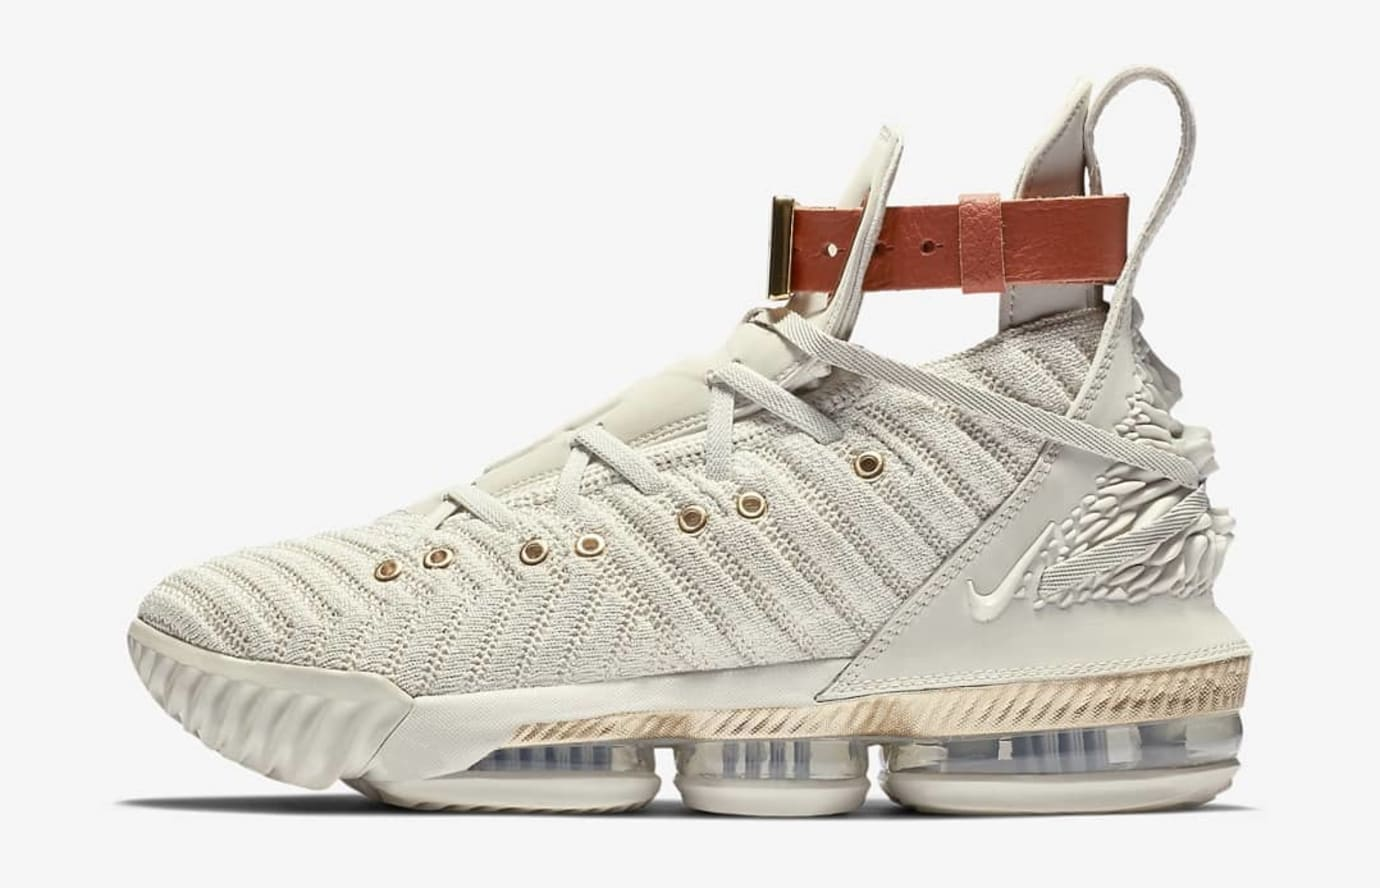 Nike LeBron 16 HFR Release Date Profile